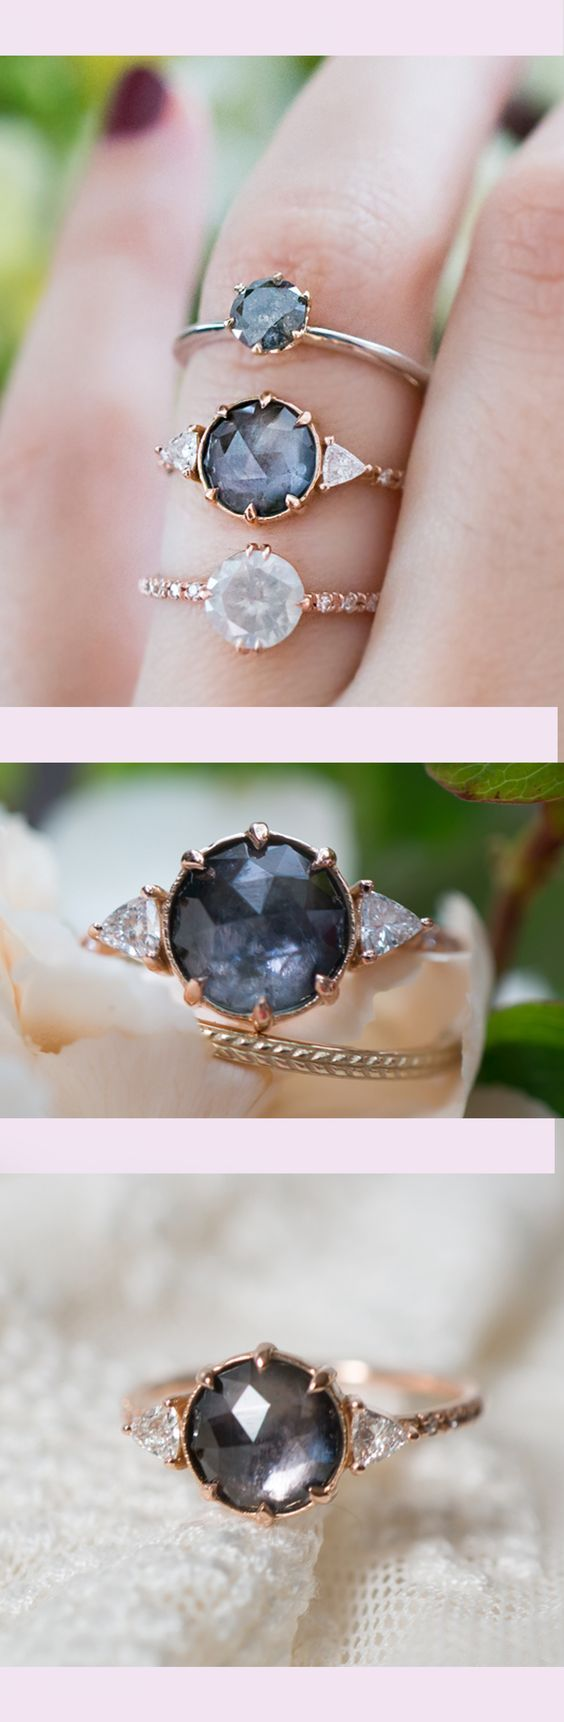 *** Unbelievable discounts on gorgeous jewelry at jewelrydealsnow.com/ *** Dreamy grey rose cut montana sapphire and vintage diamonds.